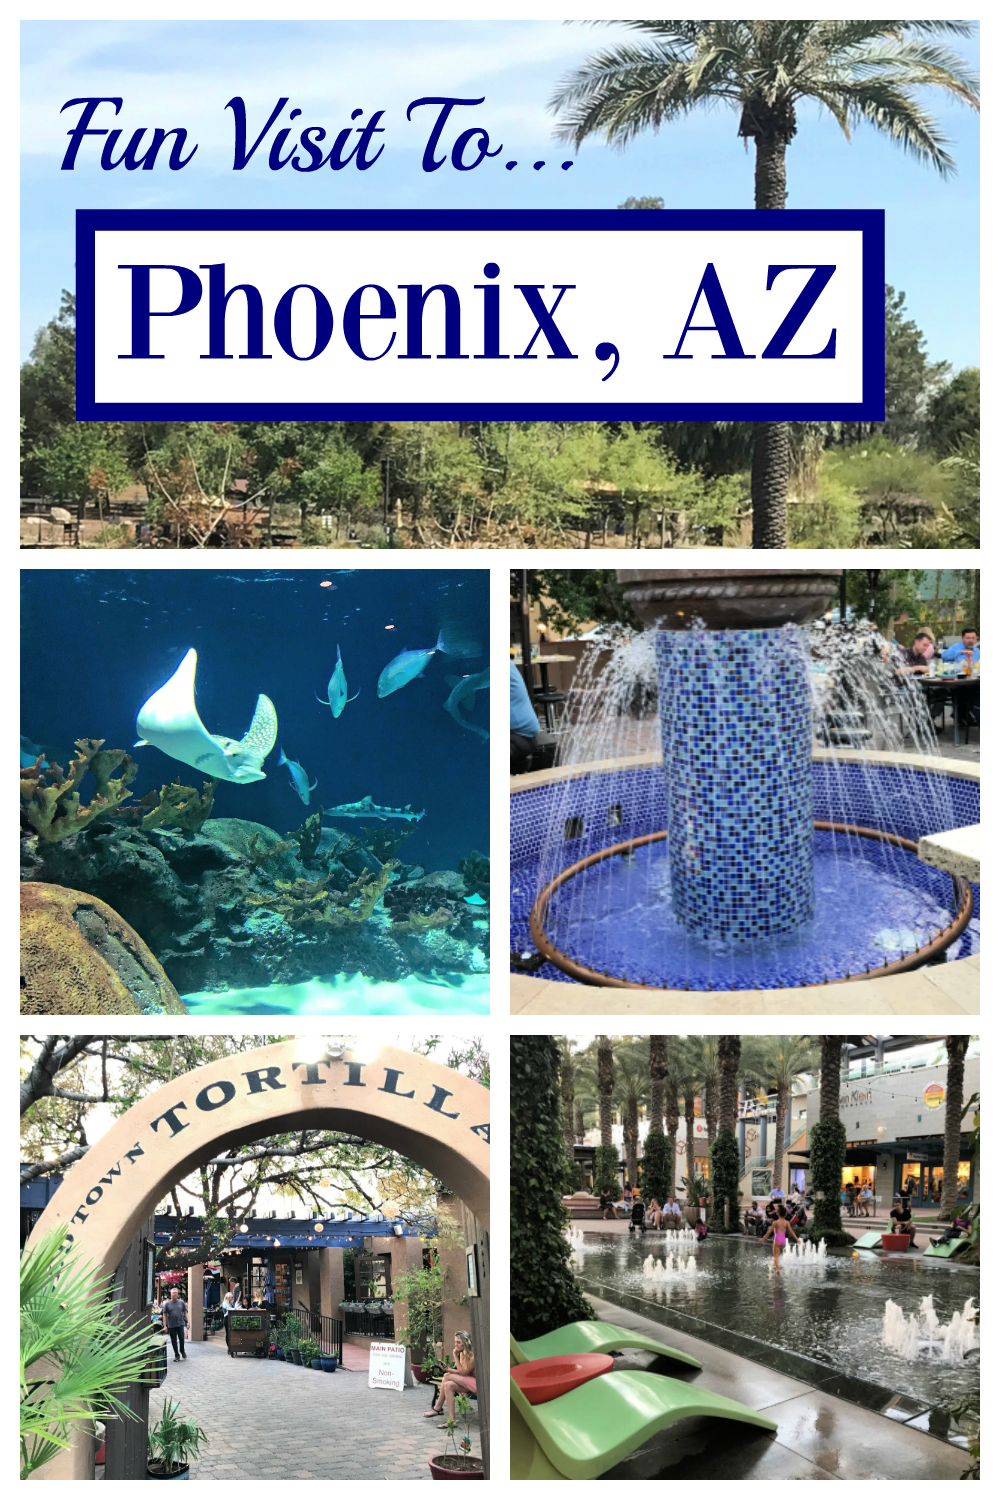 Fun things to do in Phoenix! Plan the perfect Phoenix vacation for your family! Fun vacation tips and tricks. #phoenix #phoenixvacation #funvacationforkids #kidsvacation #phoenixwithkids